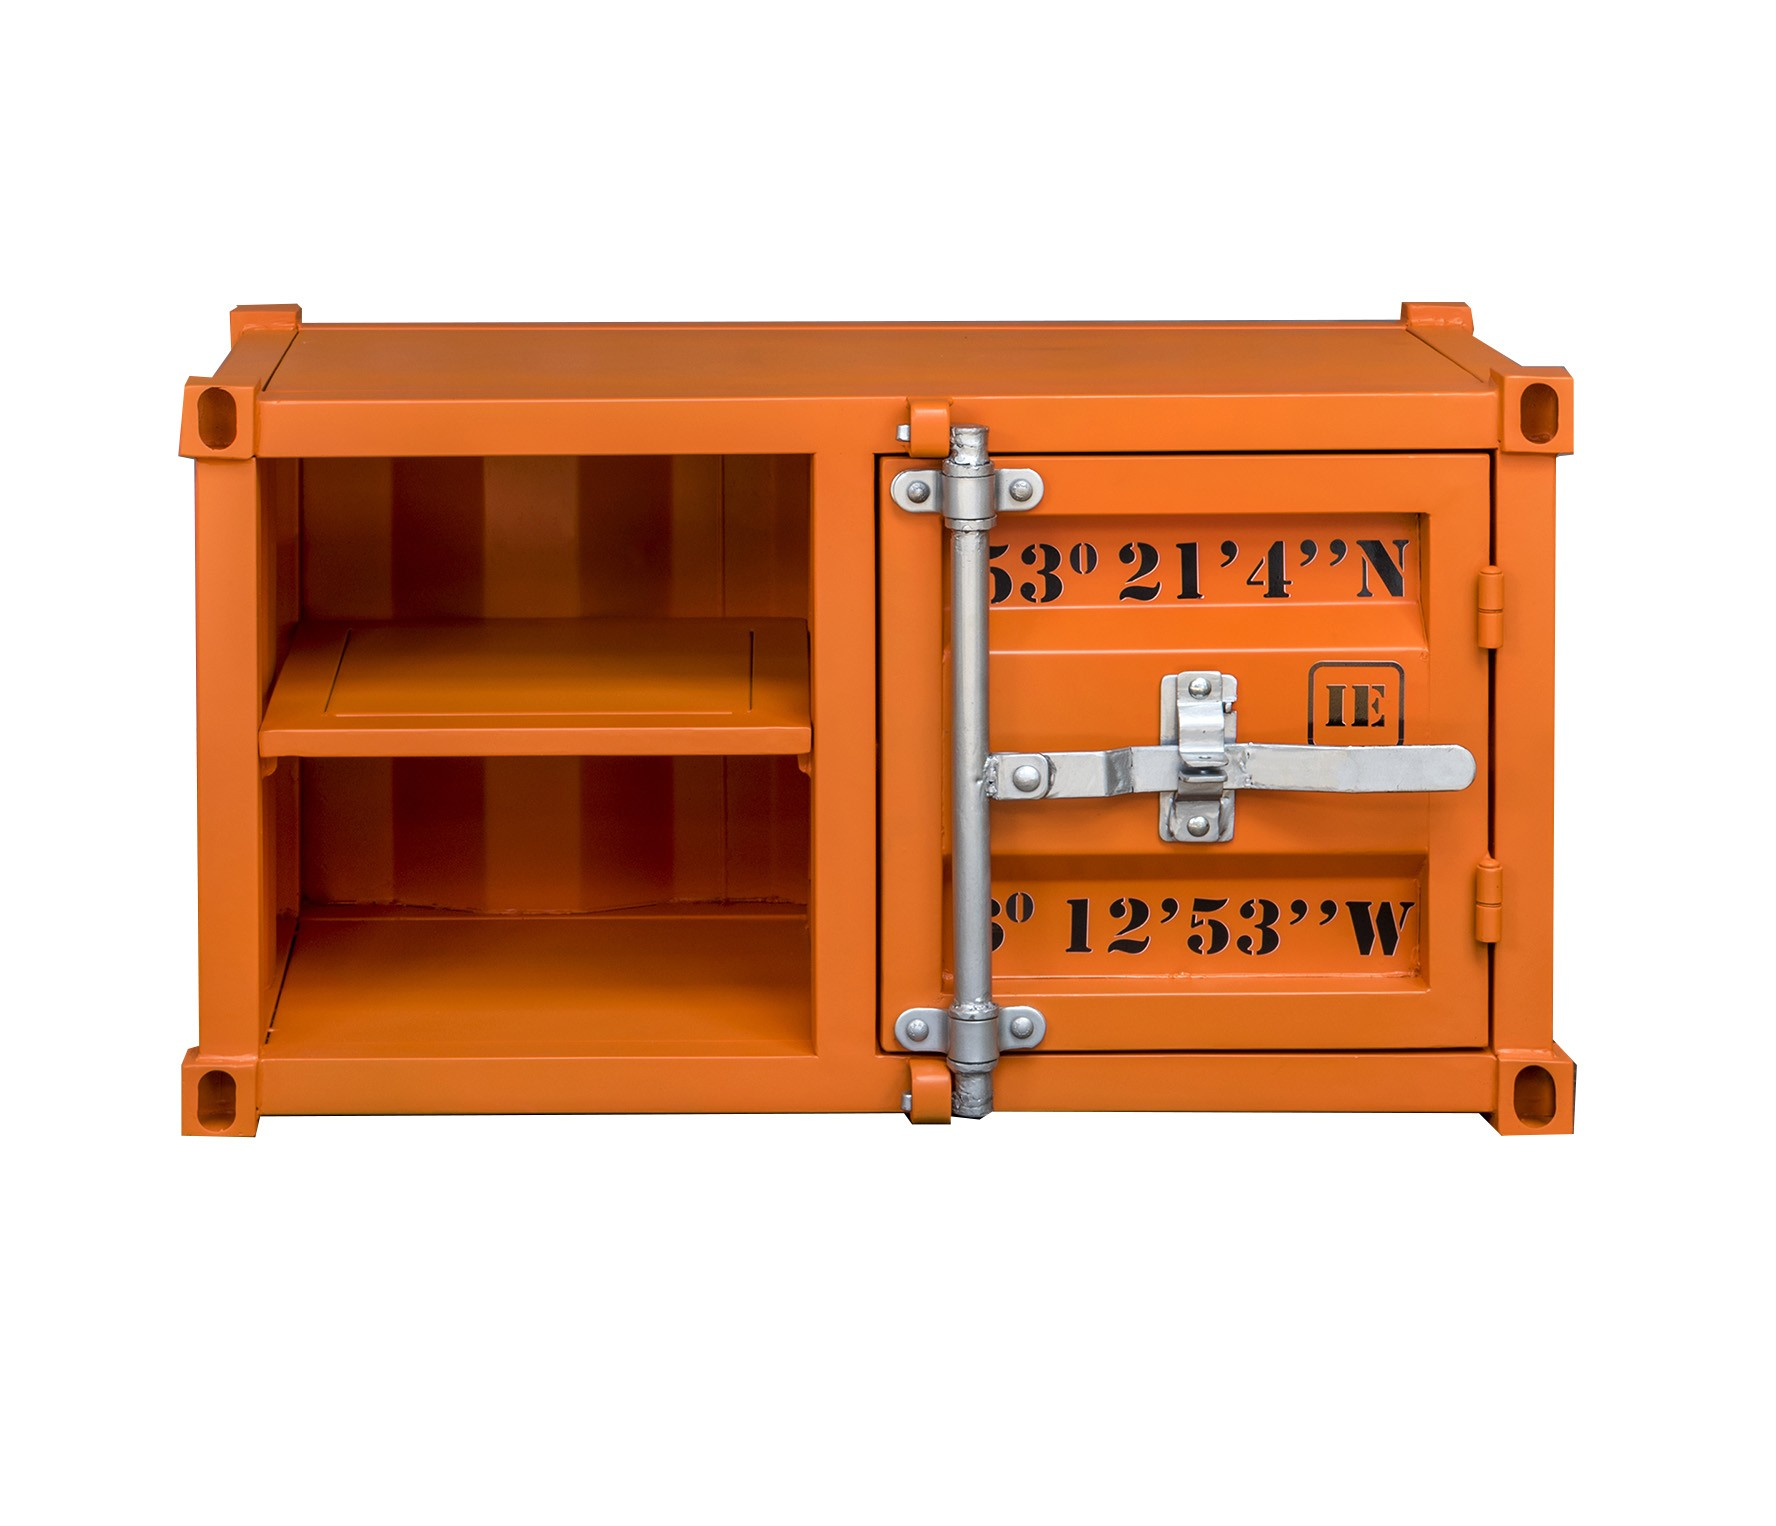 Rack Hertz Container